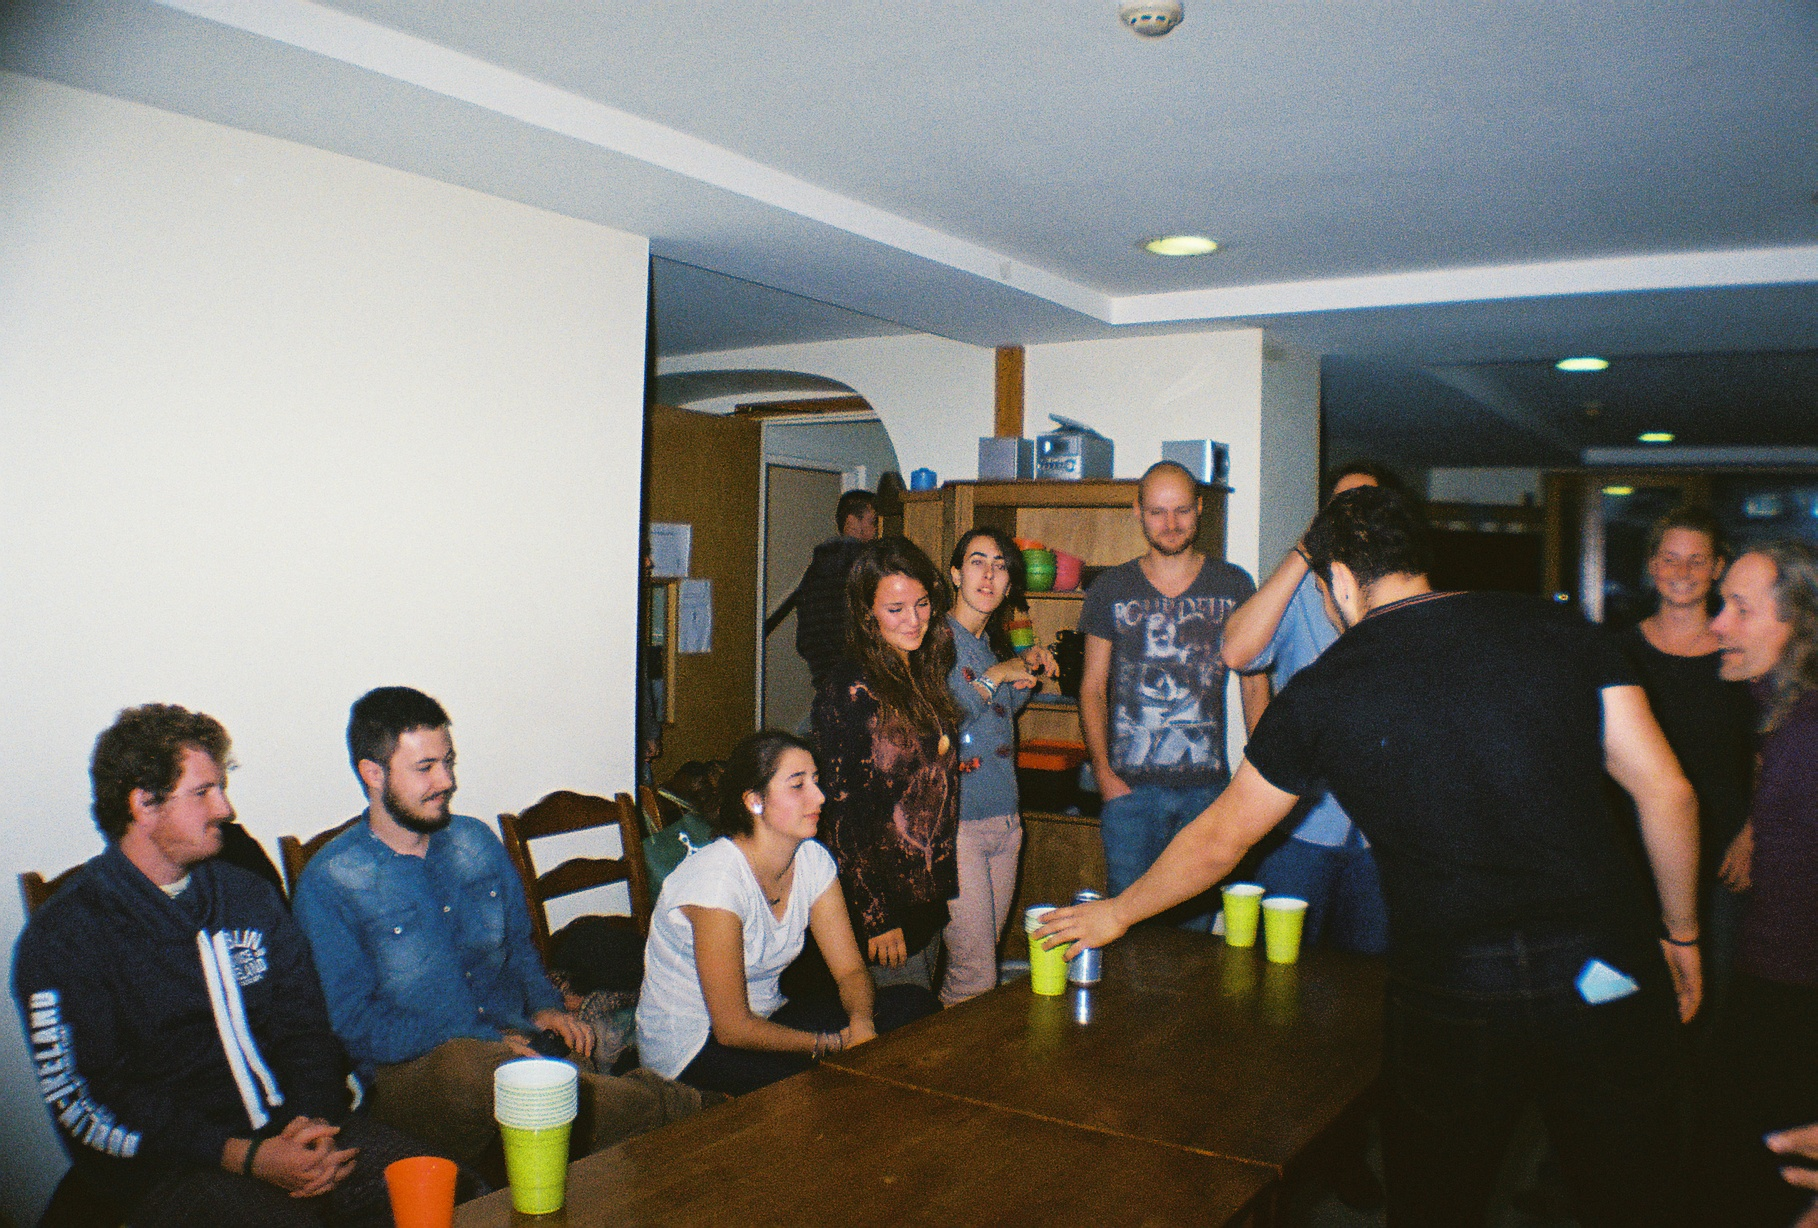 Beer pong tournament in Egali Hostel